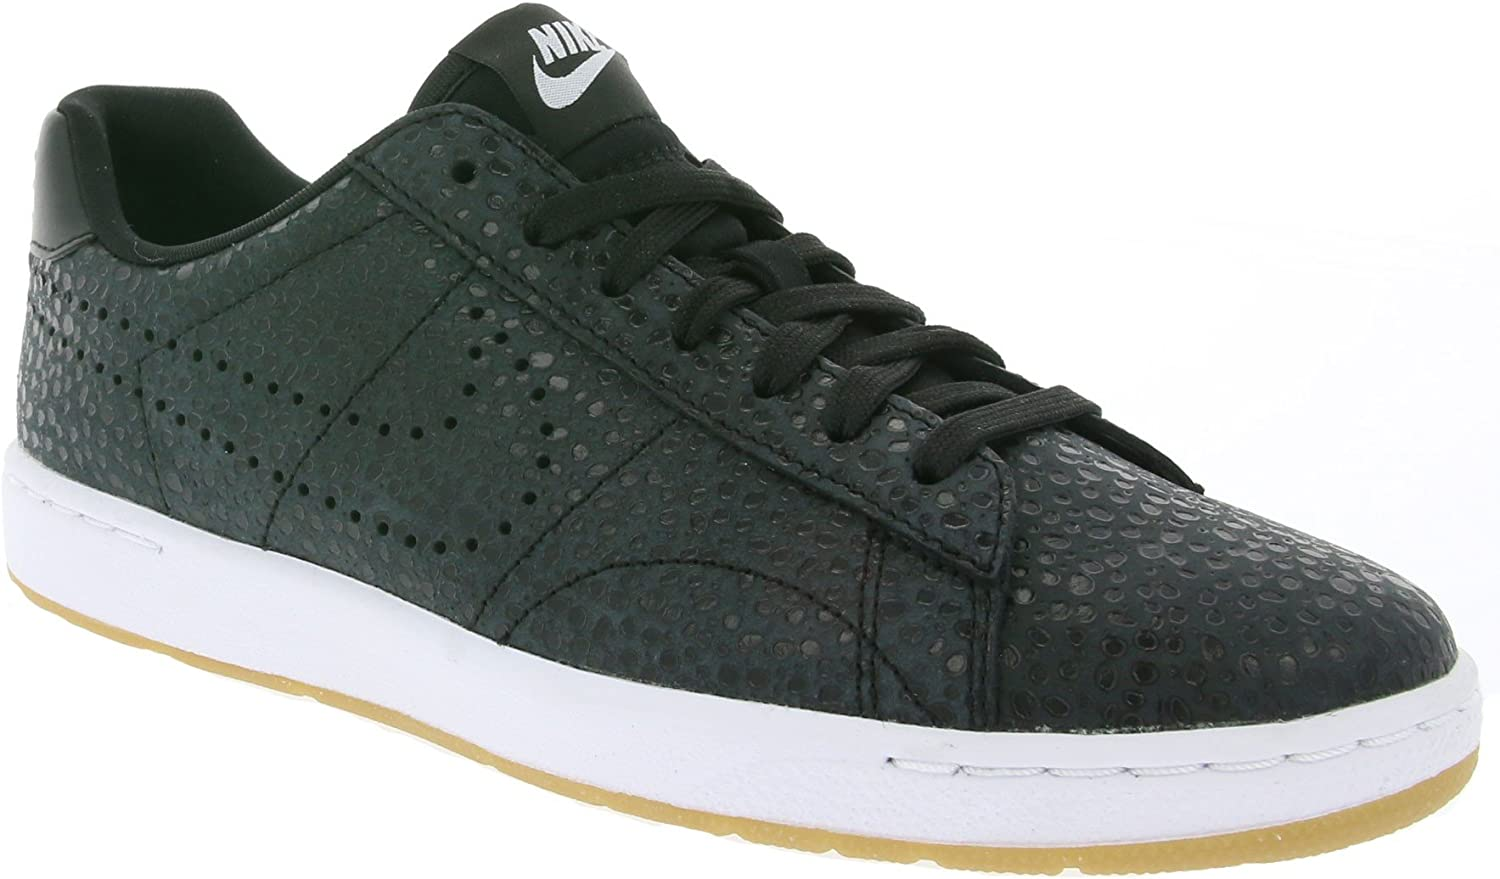 Nike Womens Tennis Classic Ultra PRM Trainers 749647 Sneakers Shoes